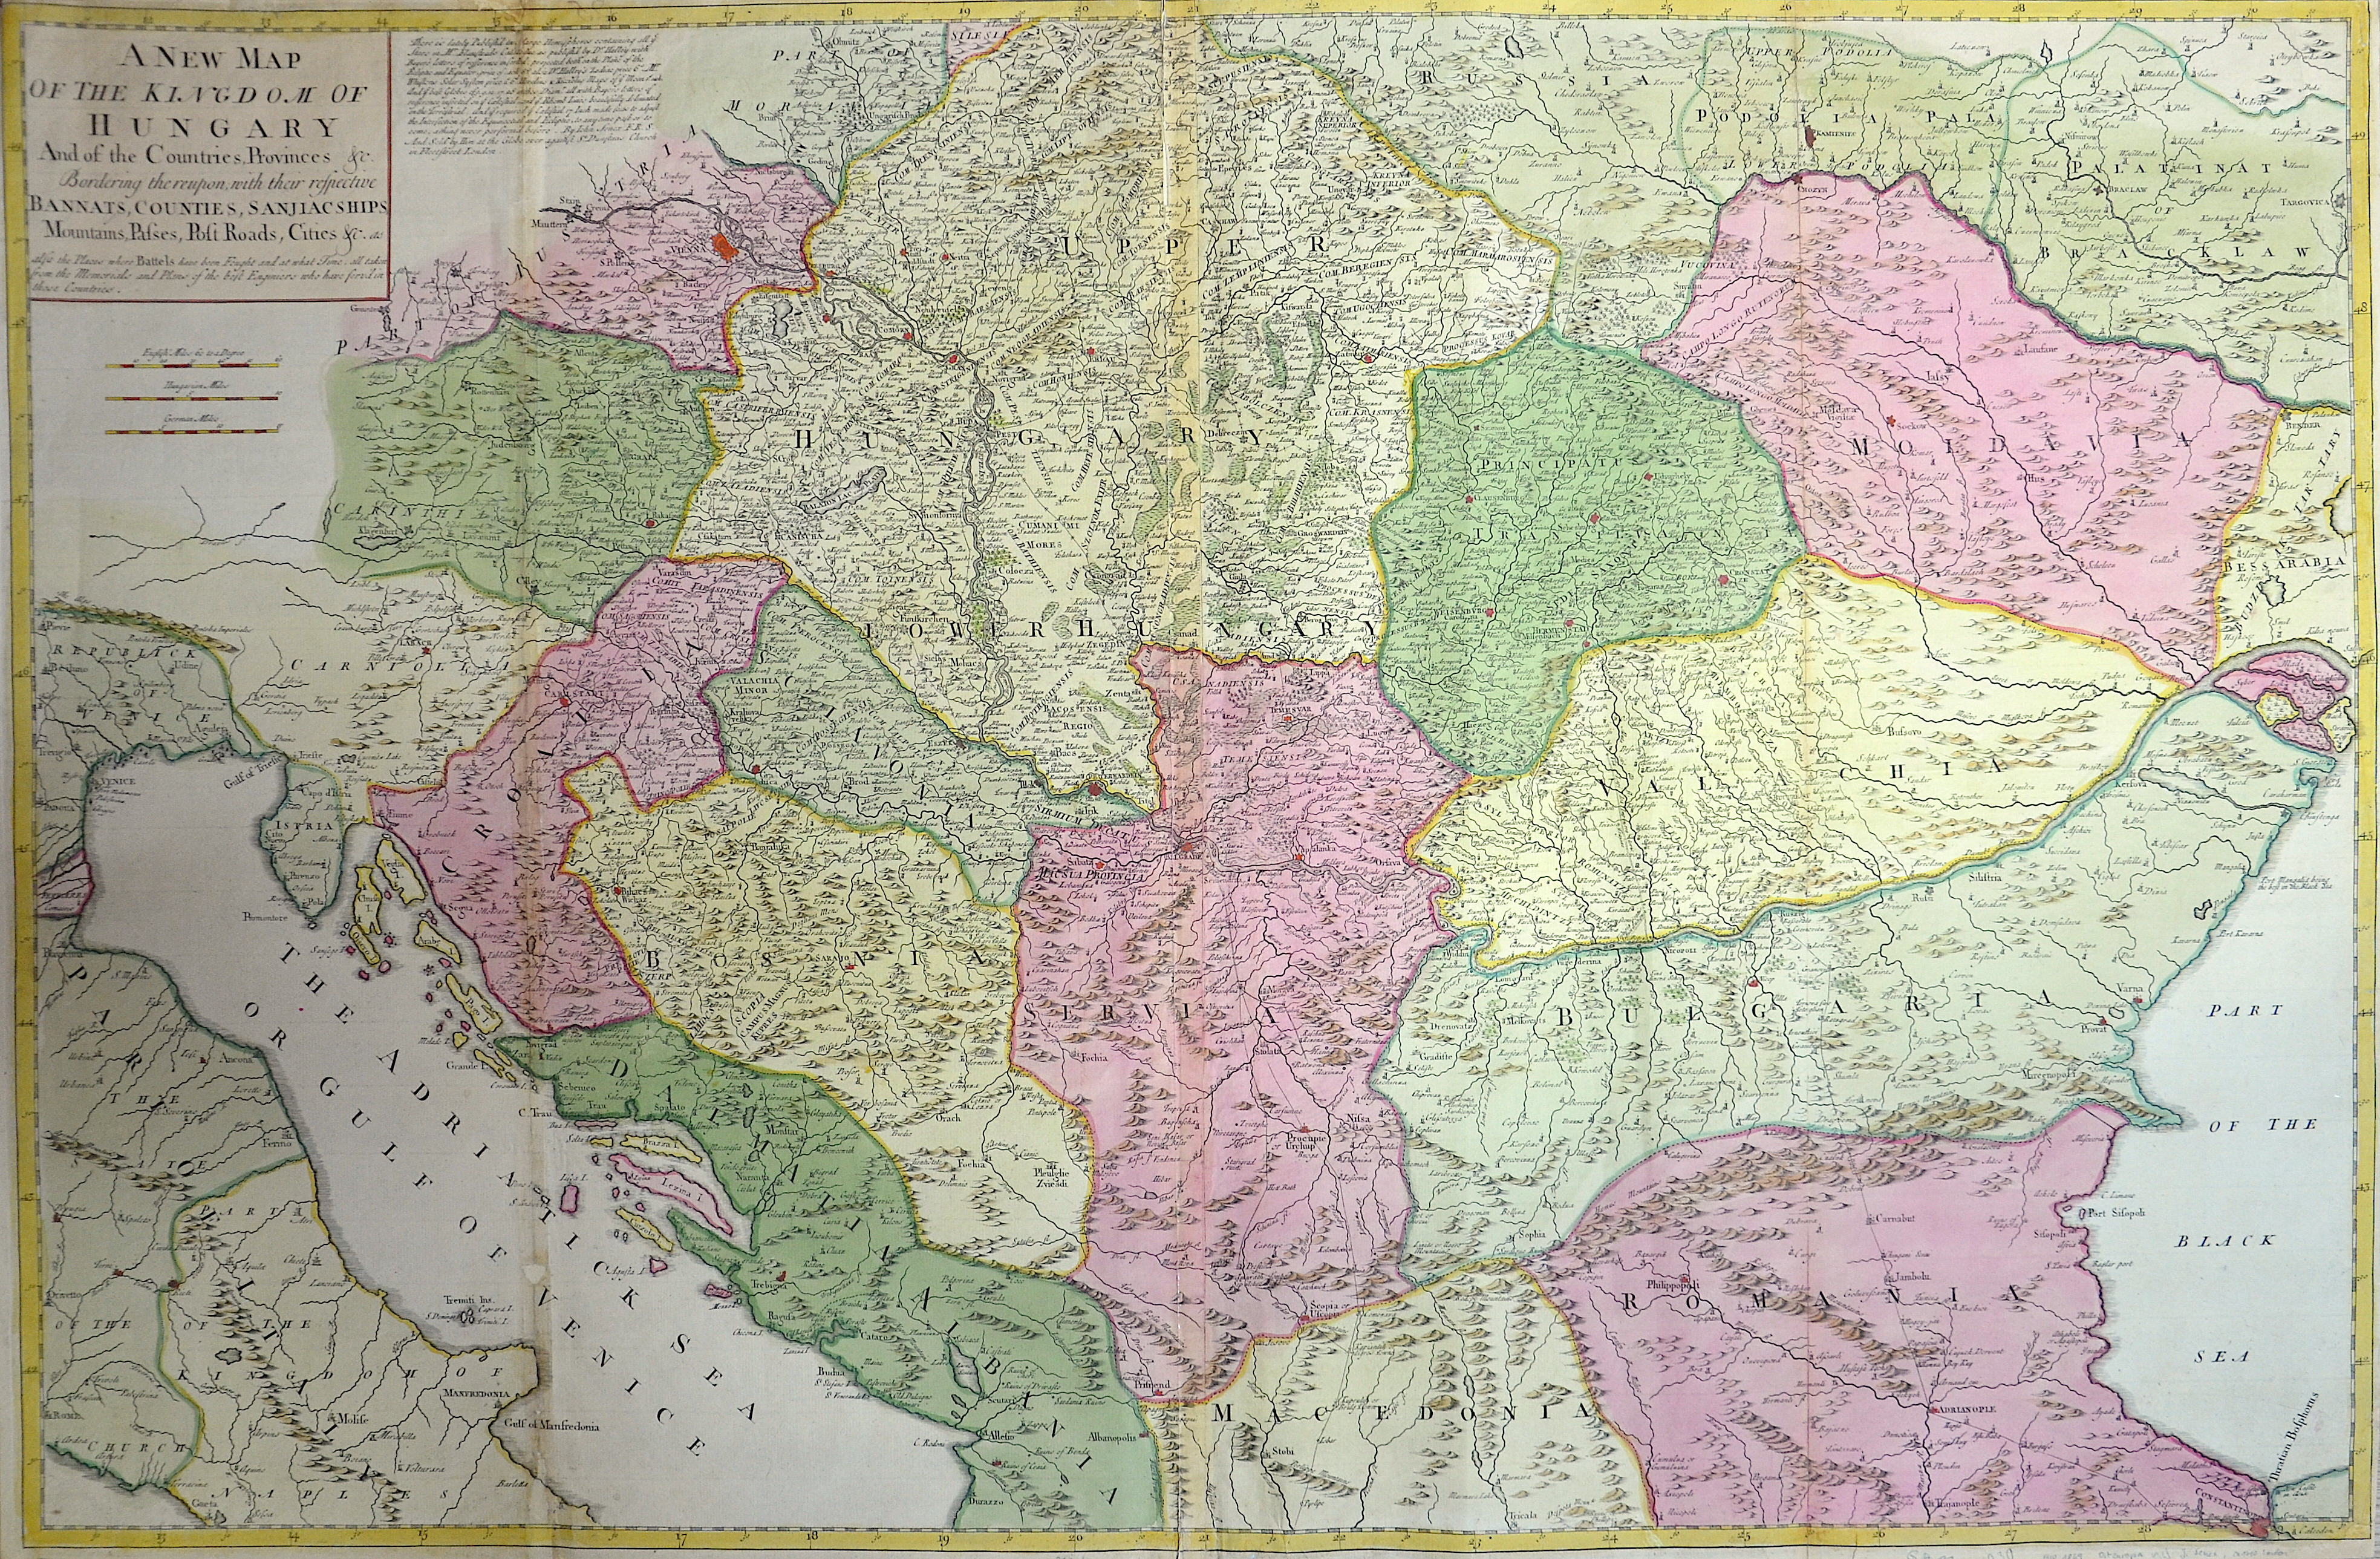 Senex  A new map of the Kingdom of Hungary and of the Countries, Provinces….Bannats,Counties, Sanjiac ships….